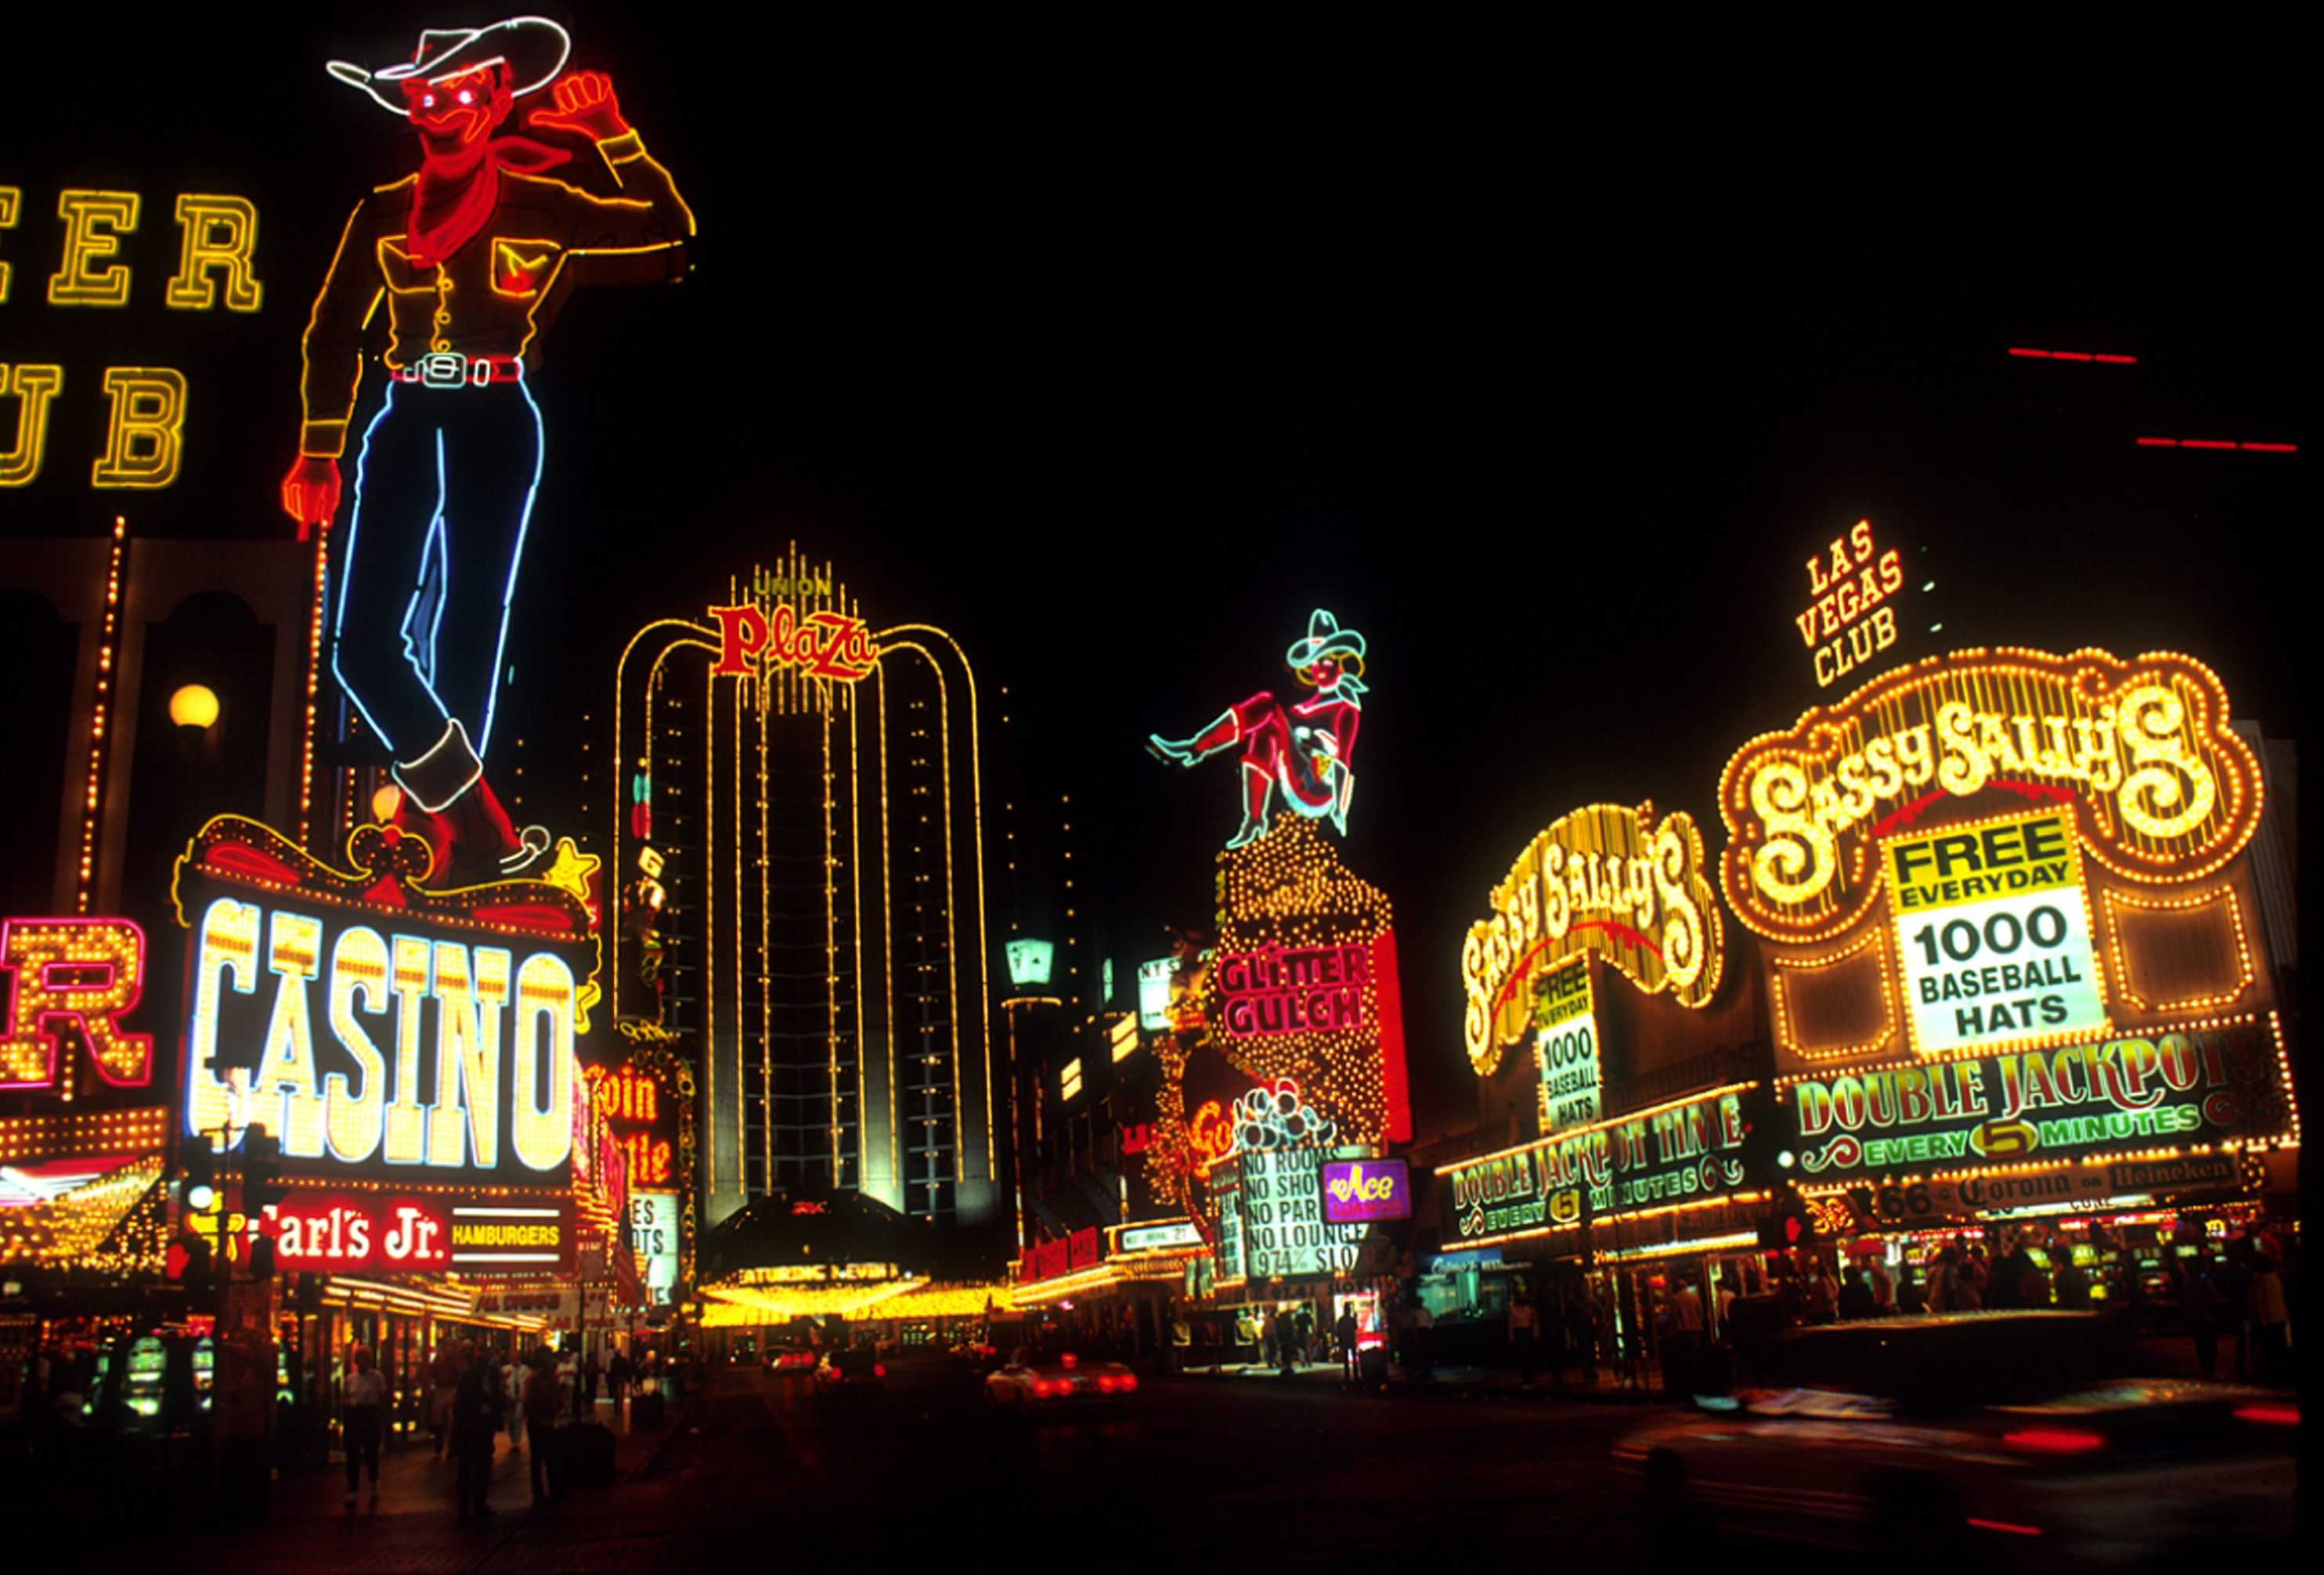 Las Vegas Night Life: Check Out the 7 Best Attractions the City Has to Offer